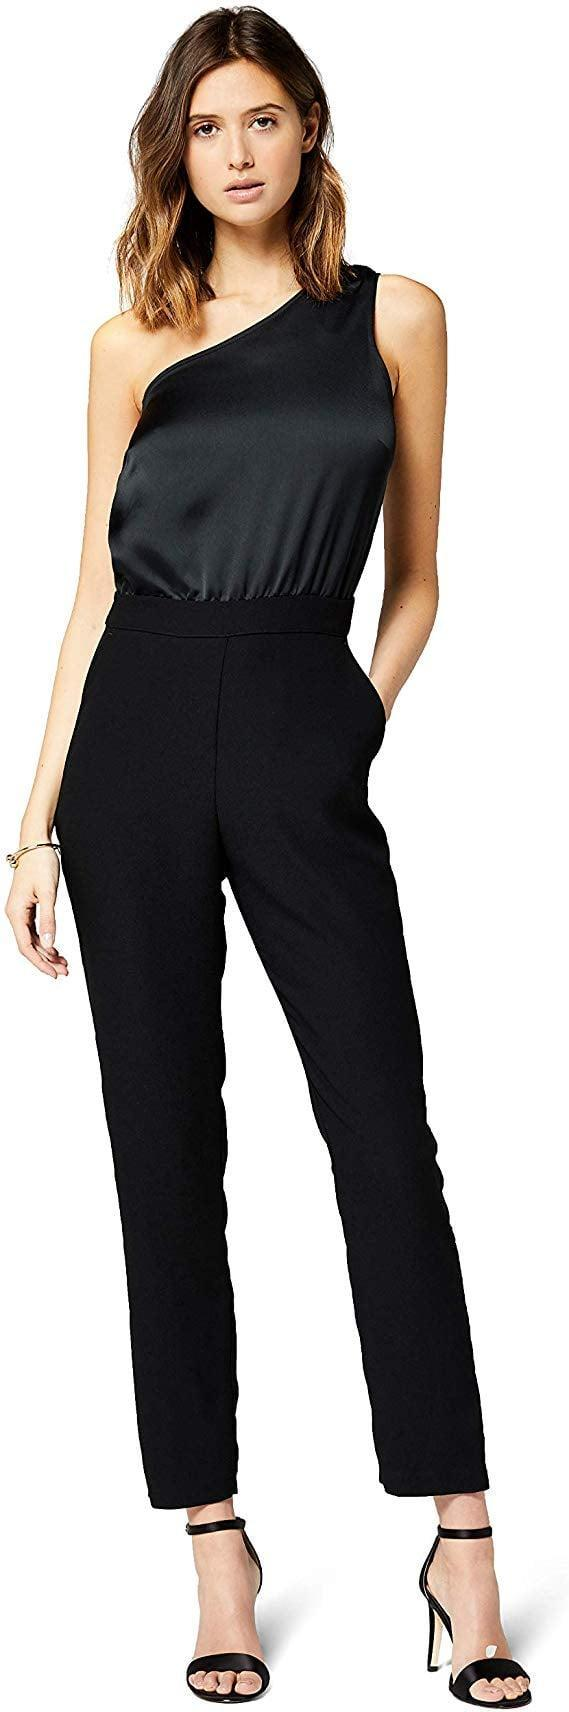 """<p>This versatile <a href=""""https://www.popsugar.com/buy/Truth-amp-Fable-Evening-One-Shoulder-Jumpsuit-523527?p_name=Truth%20%26amp%3B%20Fable%20Evening%20One-Shoulder%20Jumpsuit&retailer=amazon.com&pid=523527&price=57&evar1=fab%3Aus&evar9=46980893&evar98=https%3A%2F%2Fwww.popsugar.com%2Ffashion%2Fphoto-gallery%2F46980893%2Fimage%2F46980980%2FTruth-Fable-Evening-One-Shoulder-Jumpsuit&list1=shopping%2Camazon%2Choliday%2Cnew%20years%20eve%2Choliday%20fashion%2Cfashion%20shopping&prop13=mobile&pdata=1"""" rel=""""nofollow noopener"""" class=""""link rapid-noclick-resp"""" target=""""_blank"""" data-ylk=""""slk:Truth & Fable Evening One-Shoulder Jumpsuit"""">Truth & Fable Evening One-Shoulder Jumpsuit</a> ($57) can be worn over and over again.</p>"""